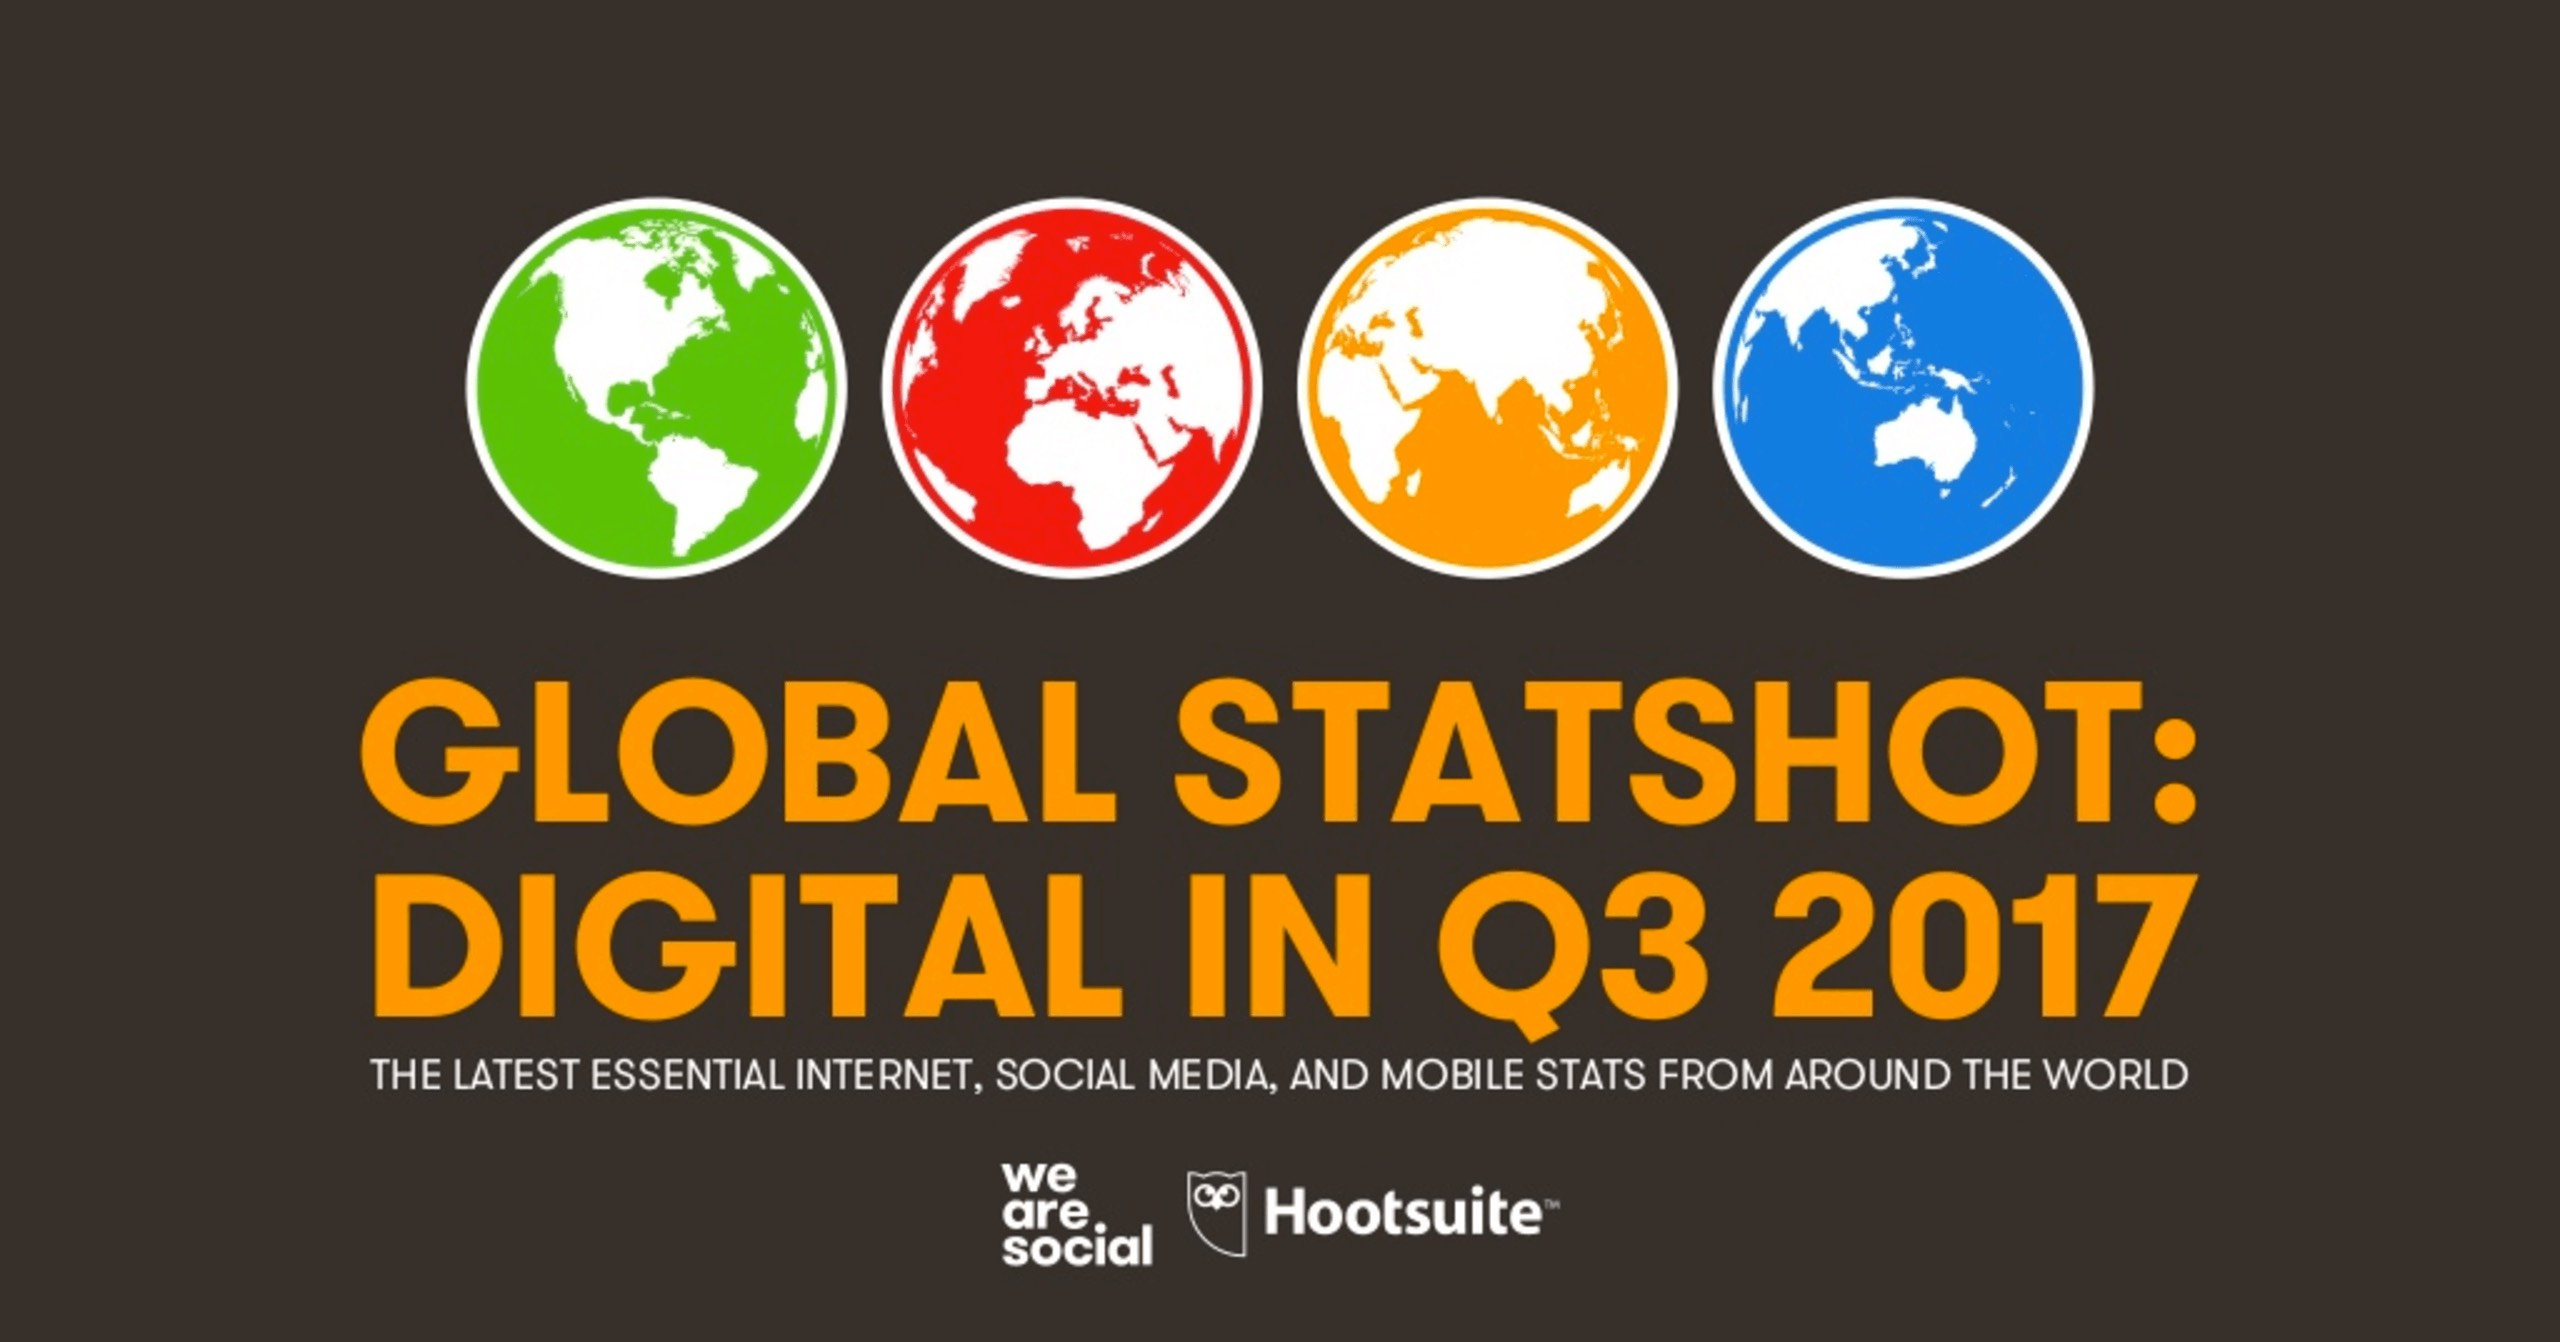 #Data #Document : Global Digital Statshot (Q3 2017)